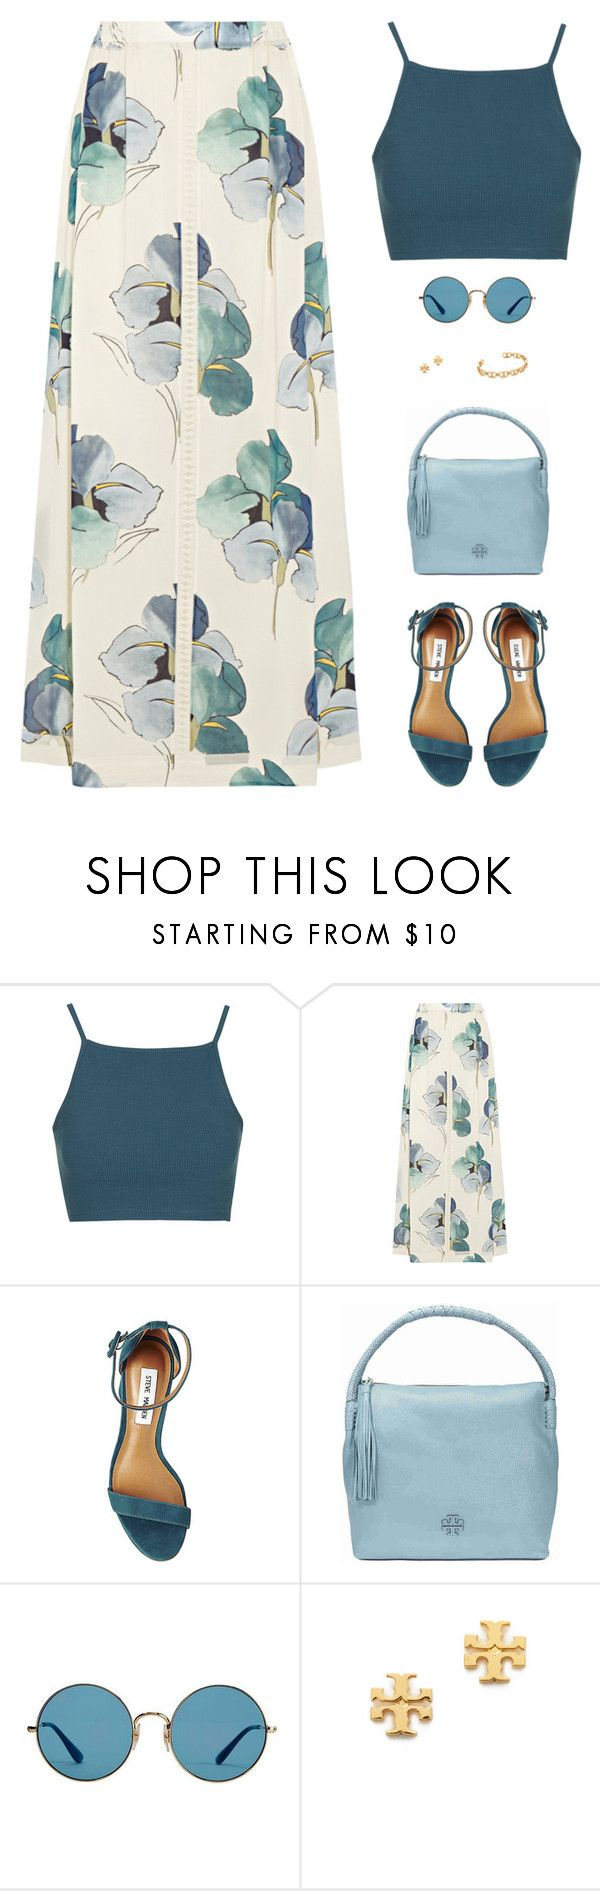 """""""Sin título #4754"""" by mdmsb on Polyvore featuring moda, Topshop, Tory Burch, Steve Madden y Ray-Ban"""